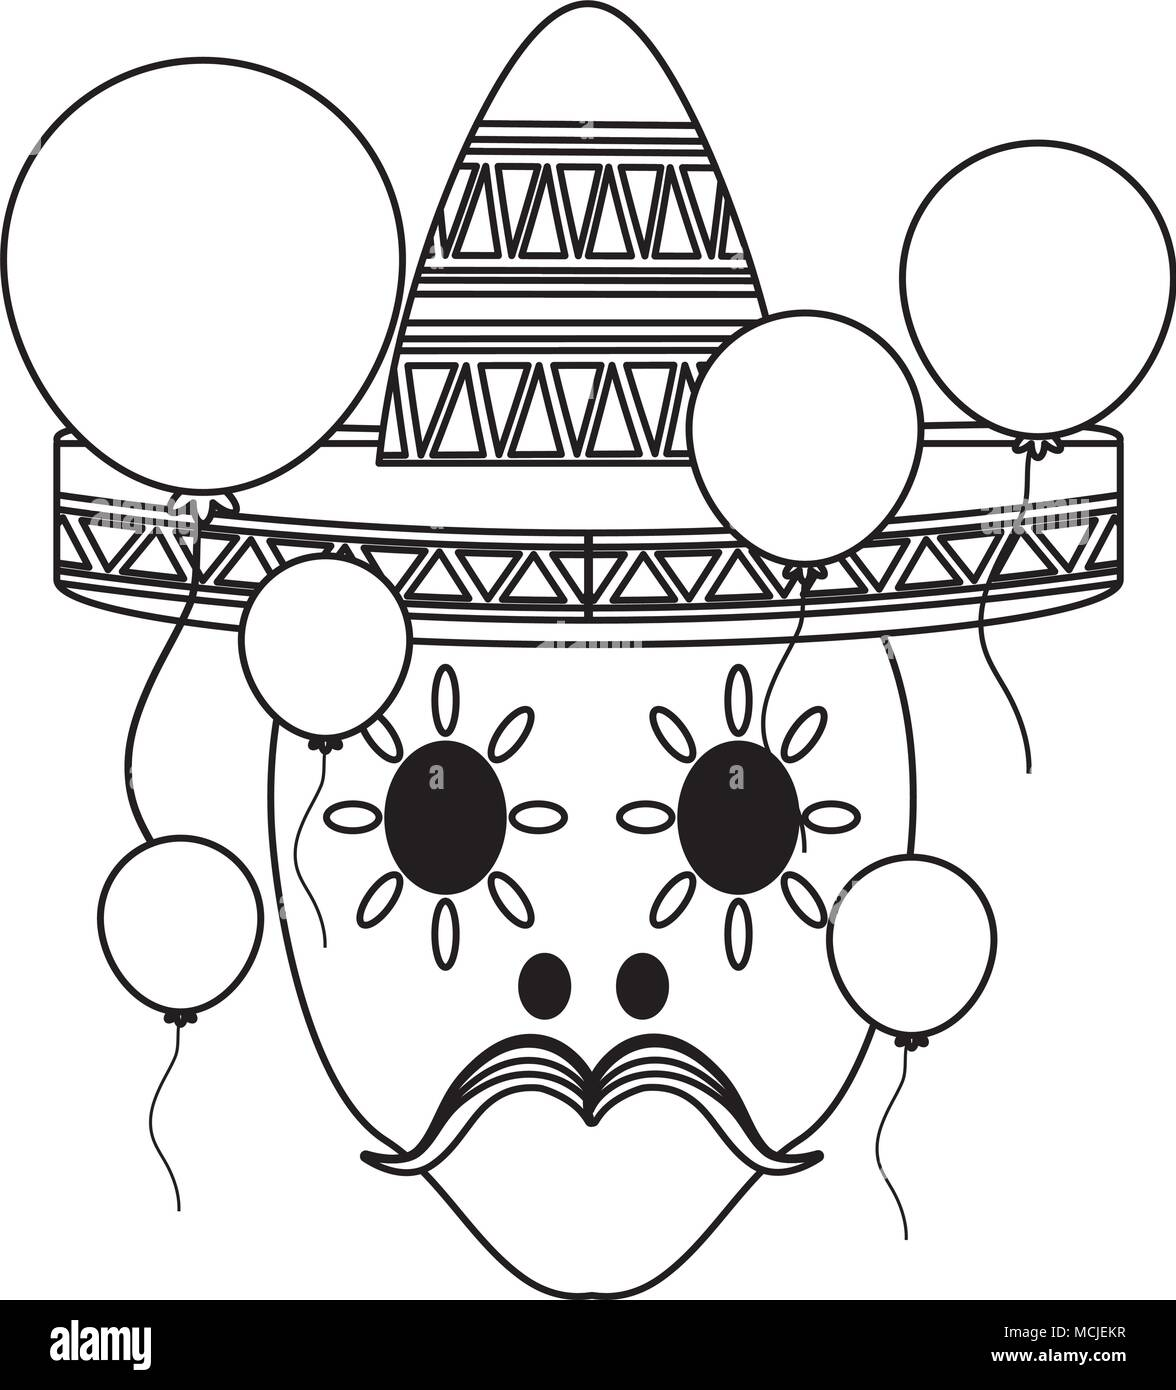 sugar skull with mexican hat and decorative balloons around over white background, vector illustration - Stock Image